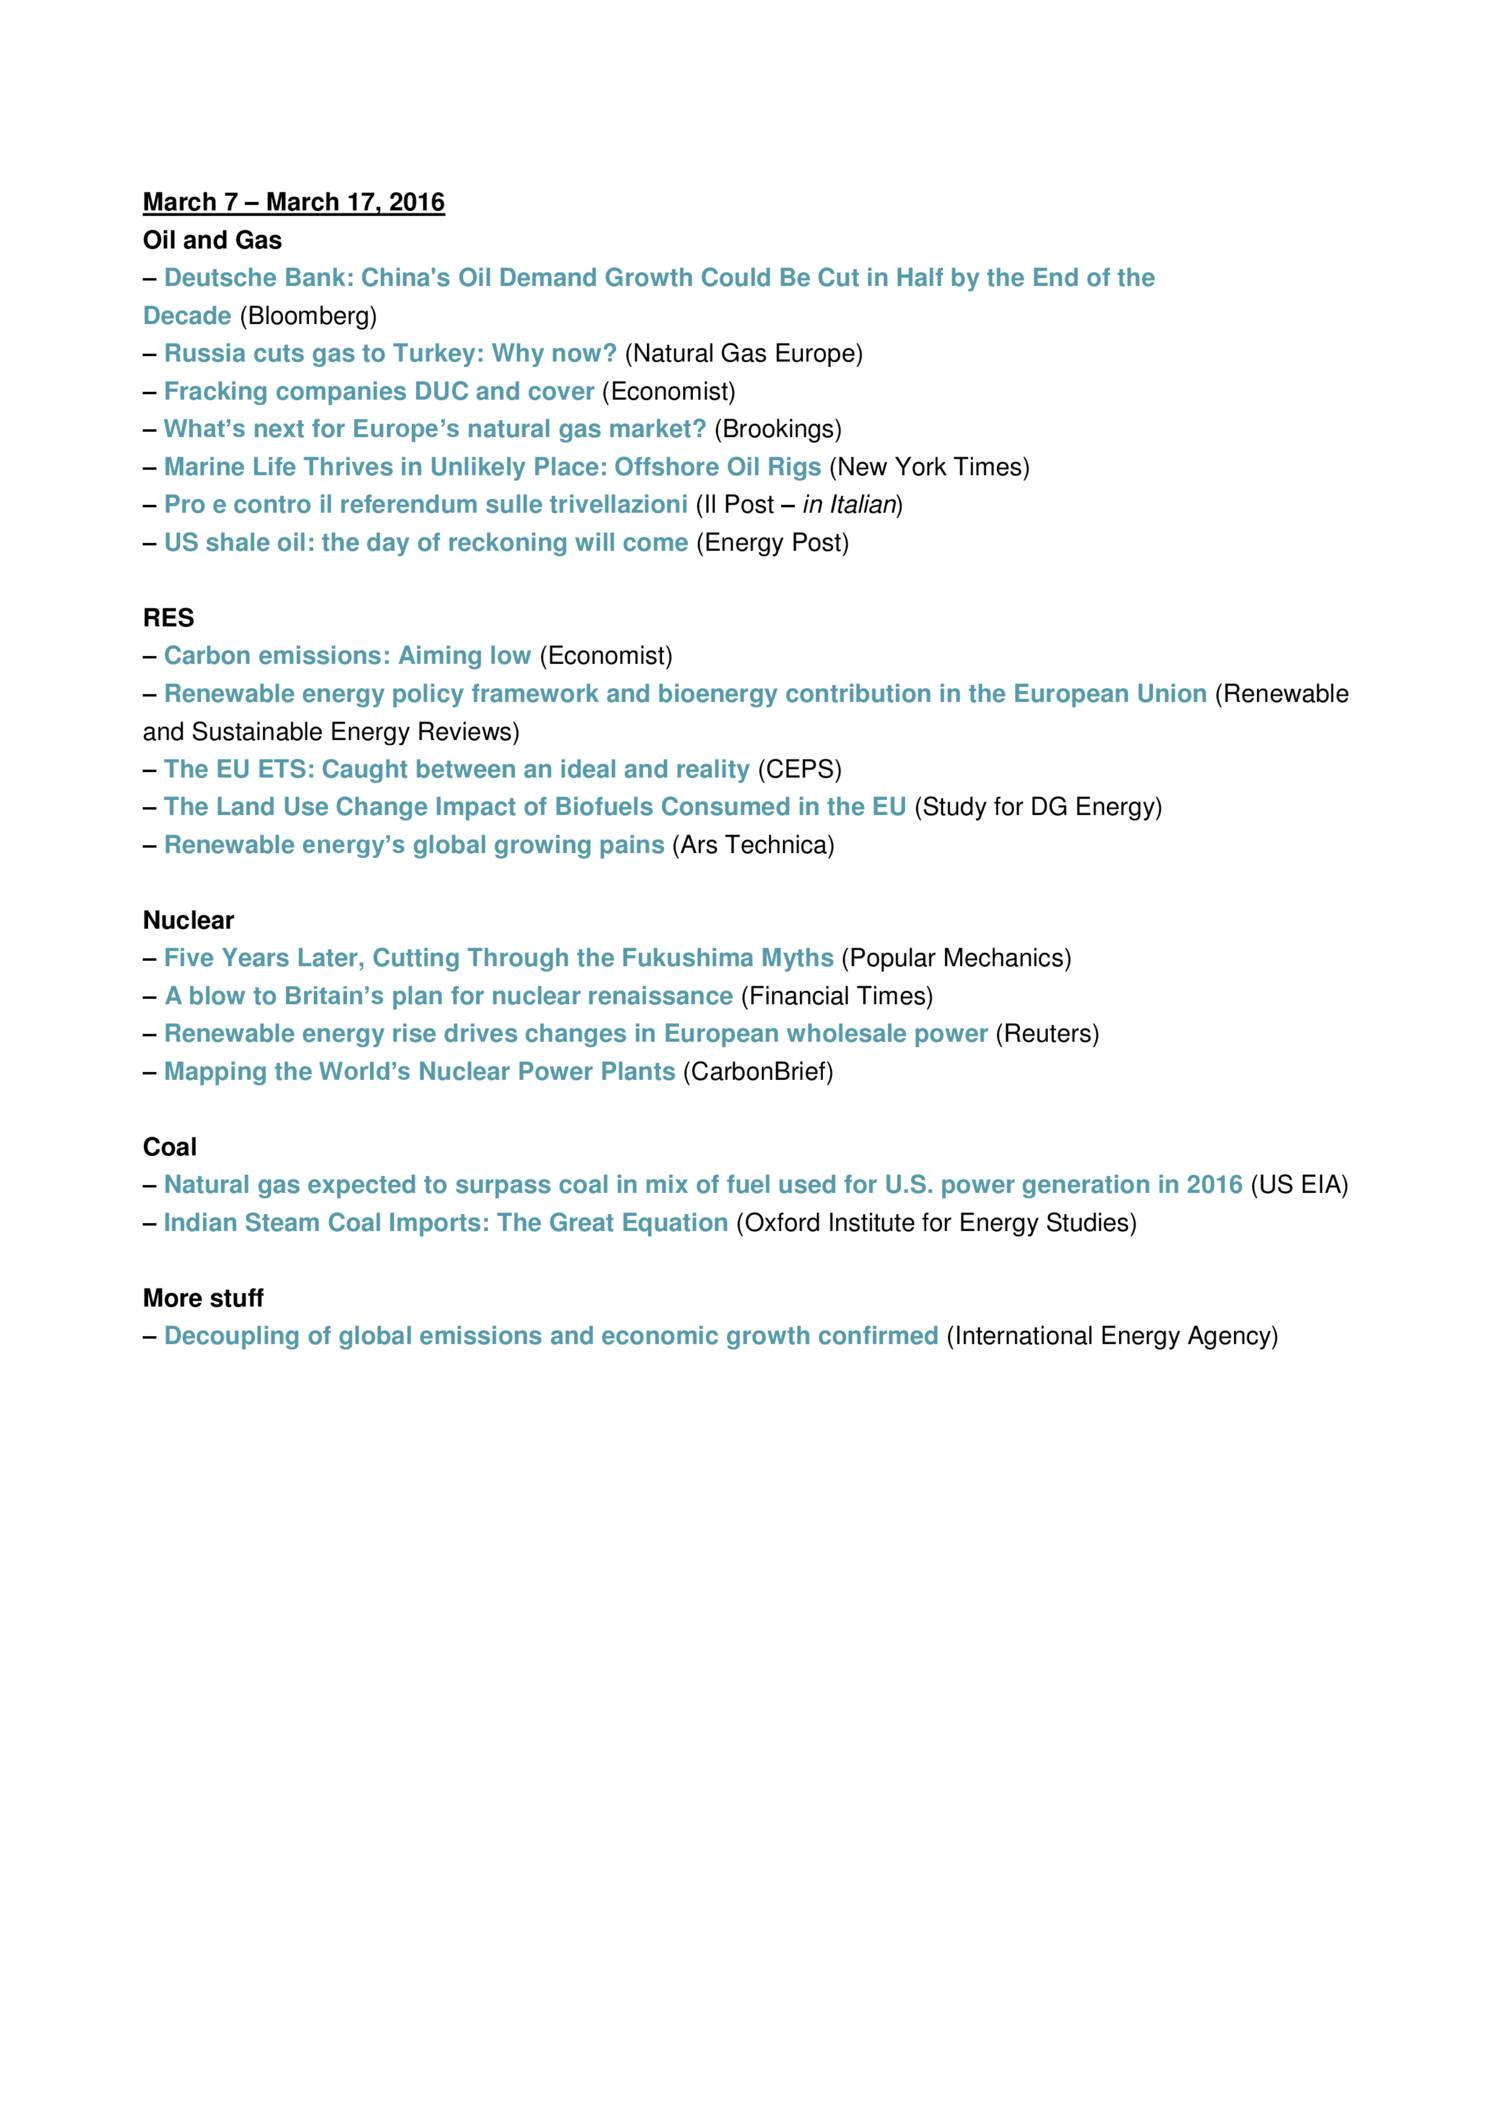 Weekly Reading List pdf DocDroid